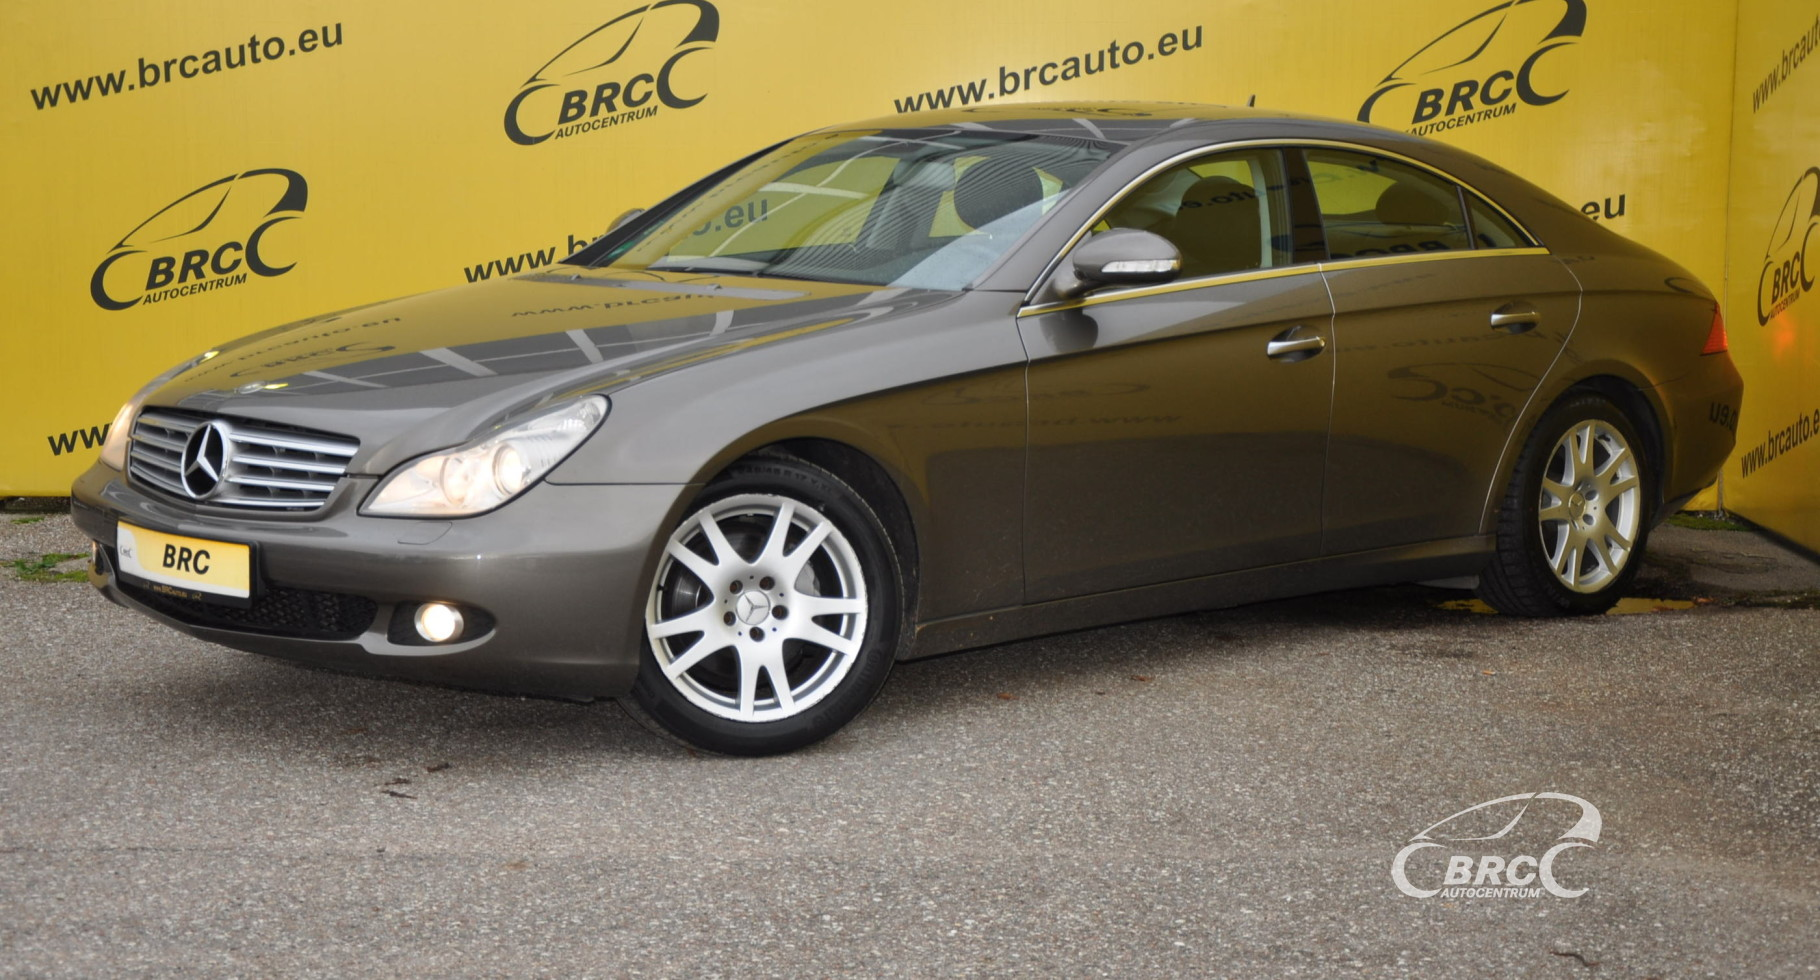 Mercedes benz cls 320 cdi automatas id 794749 brc for 320 mercedes benz